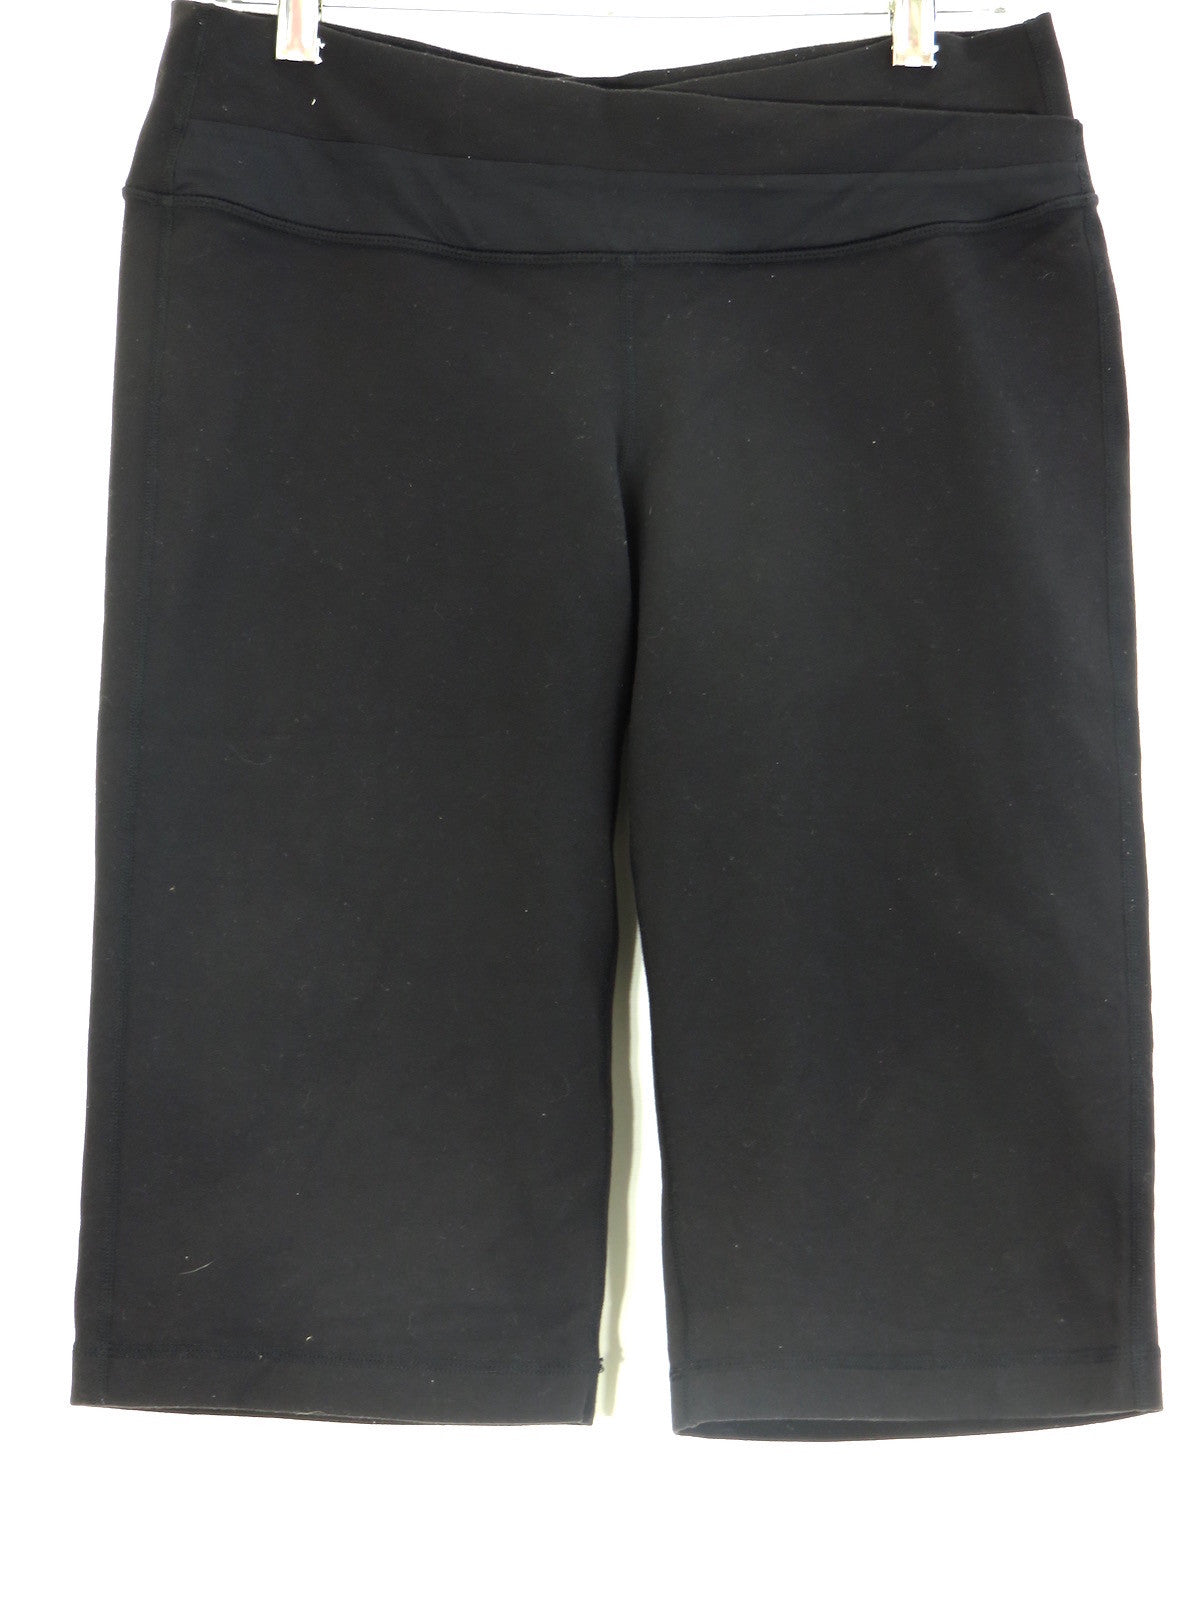 4c2f1e67c LULULEMON ATHLETICA Women Black Athletic Sports Wear Capri Pants Size 10